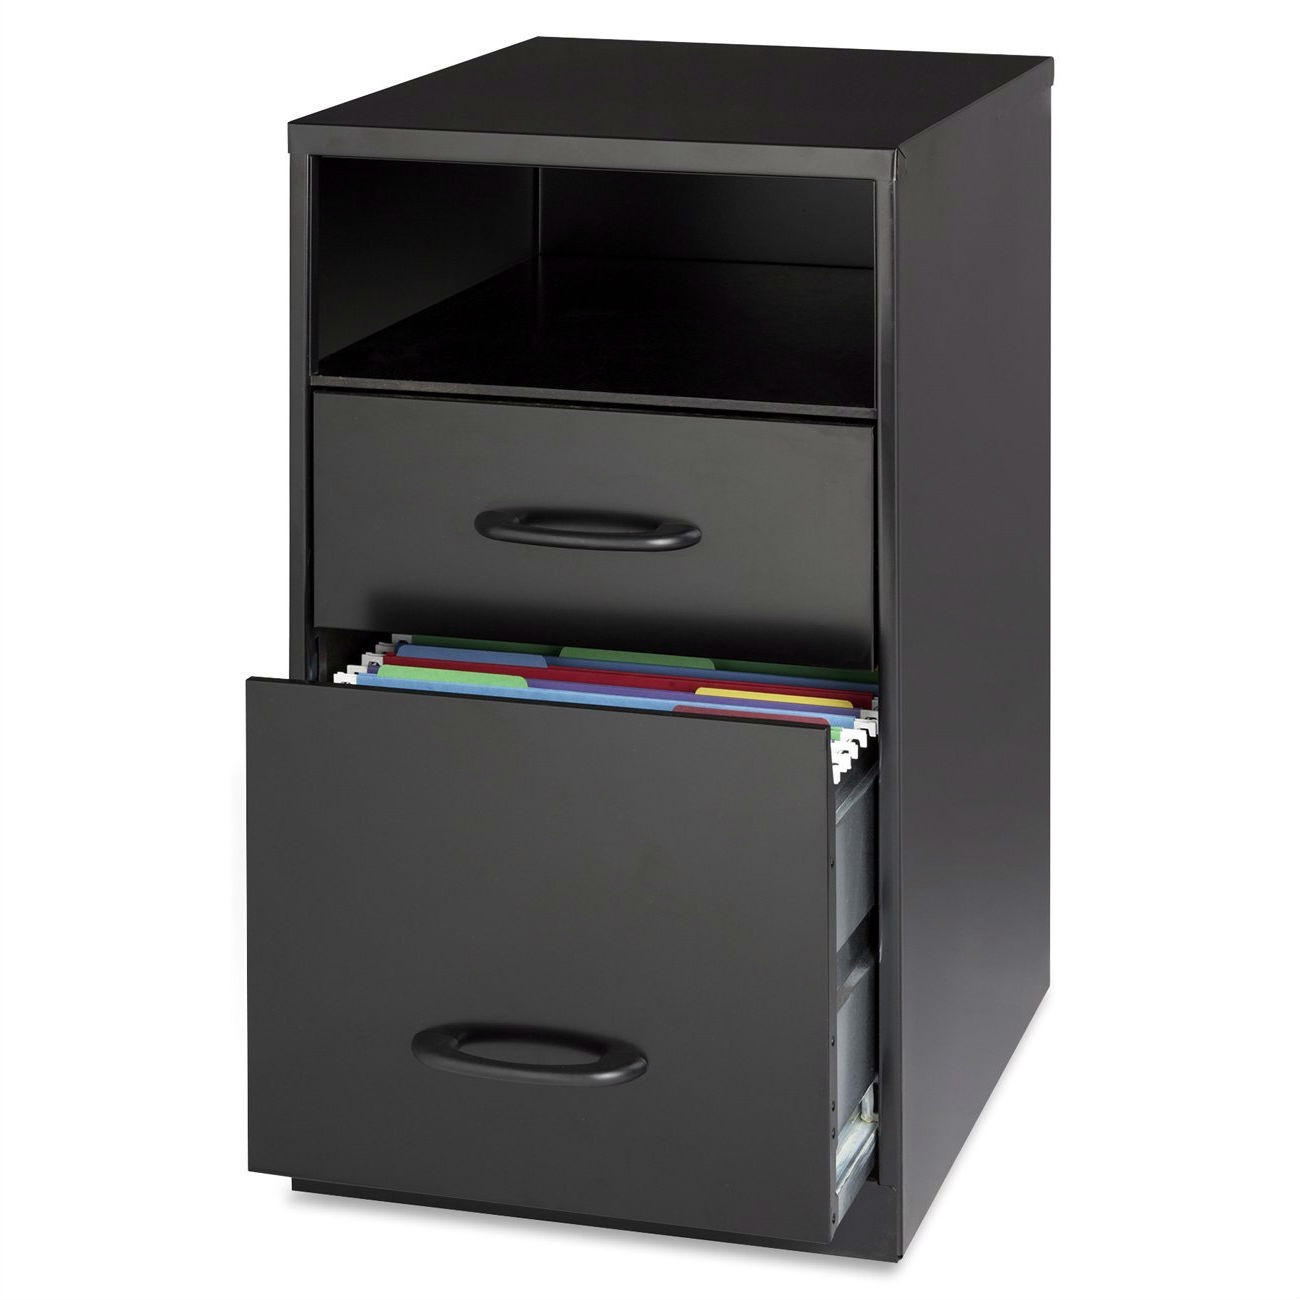 Metal Black Kitchen Cabinets: Black Metal 2-Drawer Filing Cabinet With Office Storage